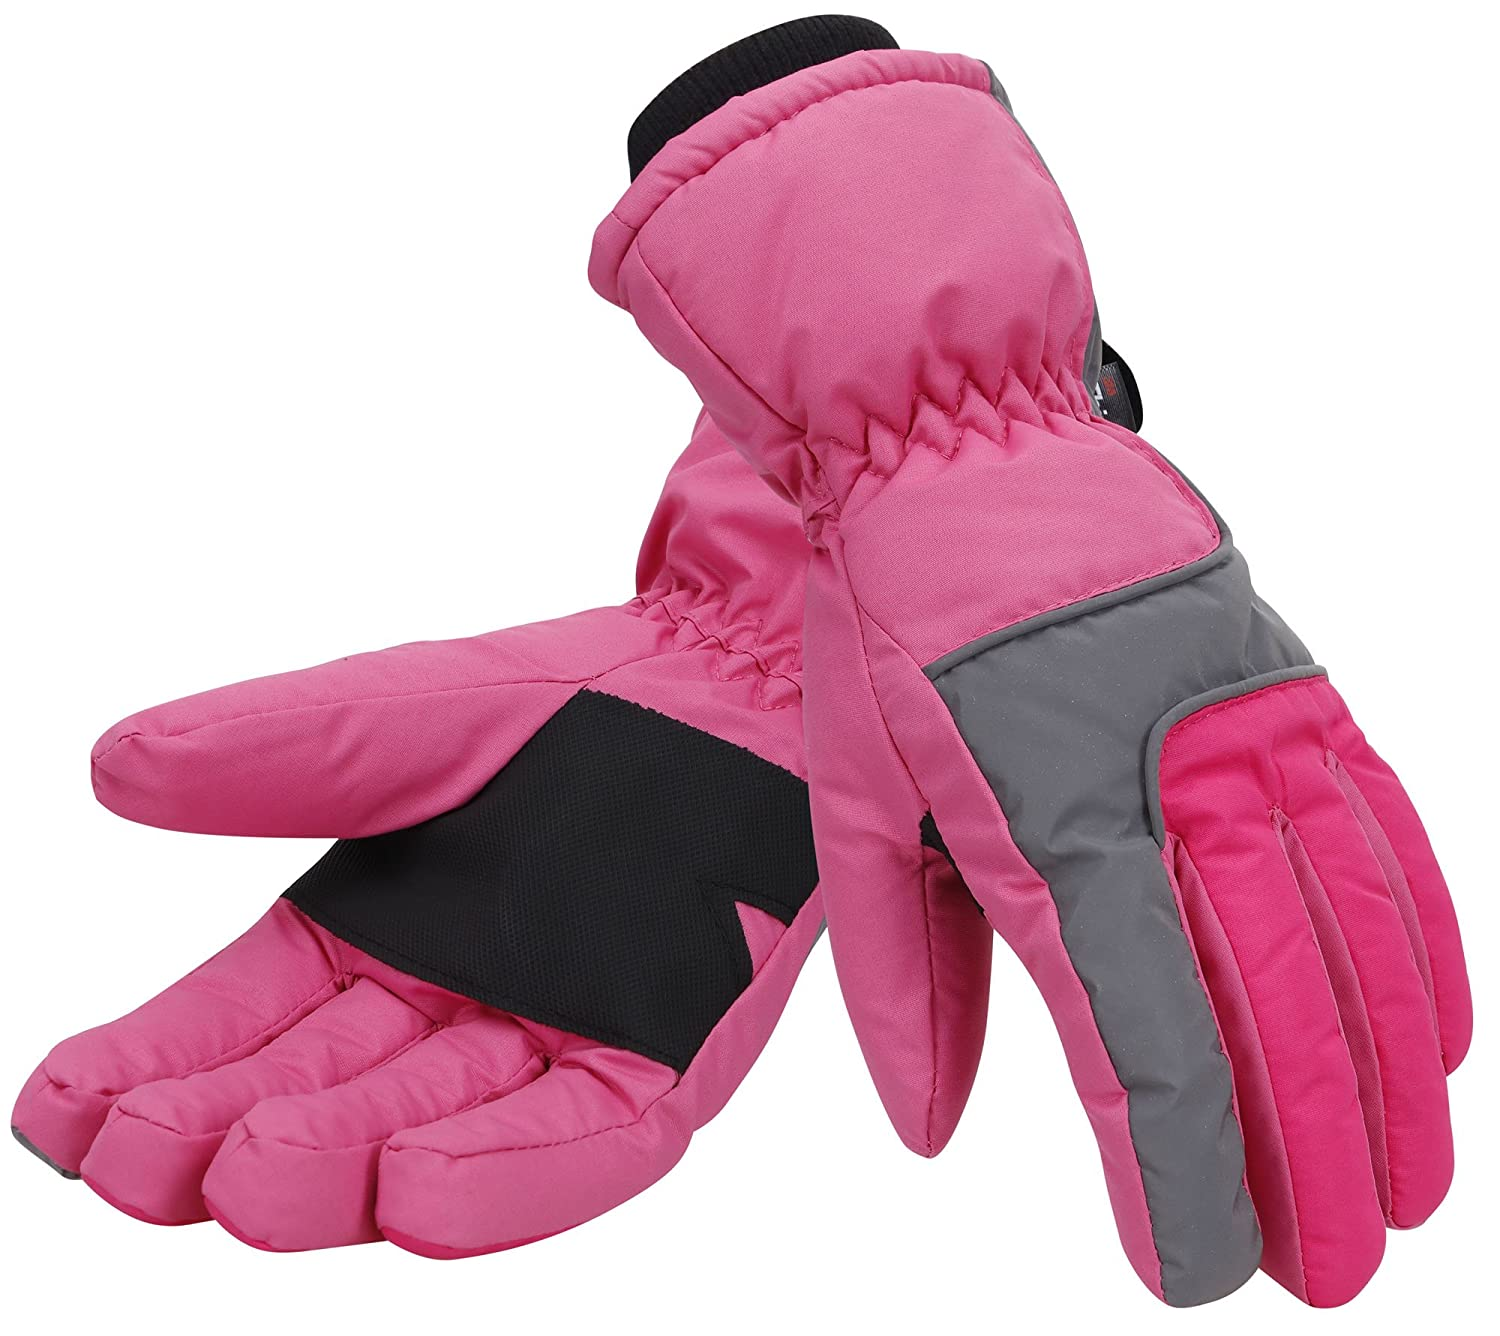 Simplicity Women's Thinsulate Lined Waterproof Outdoors Ski Gloves